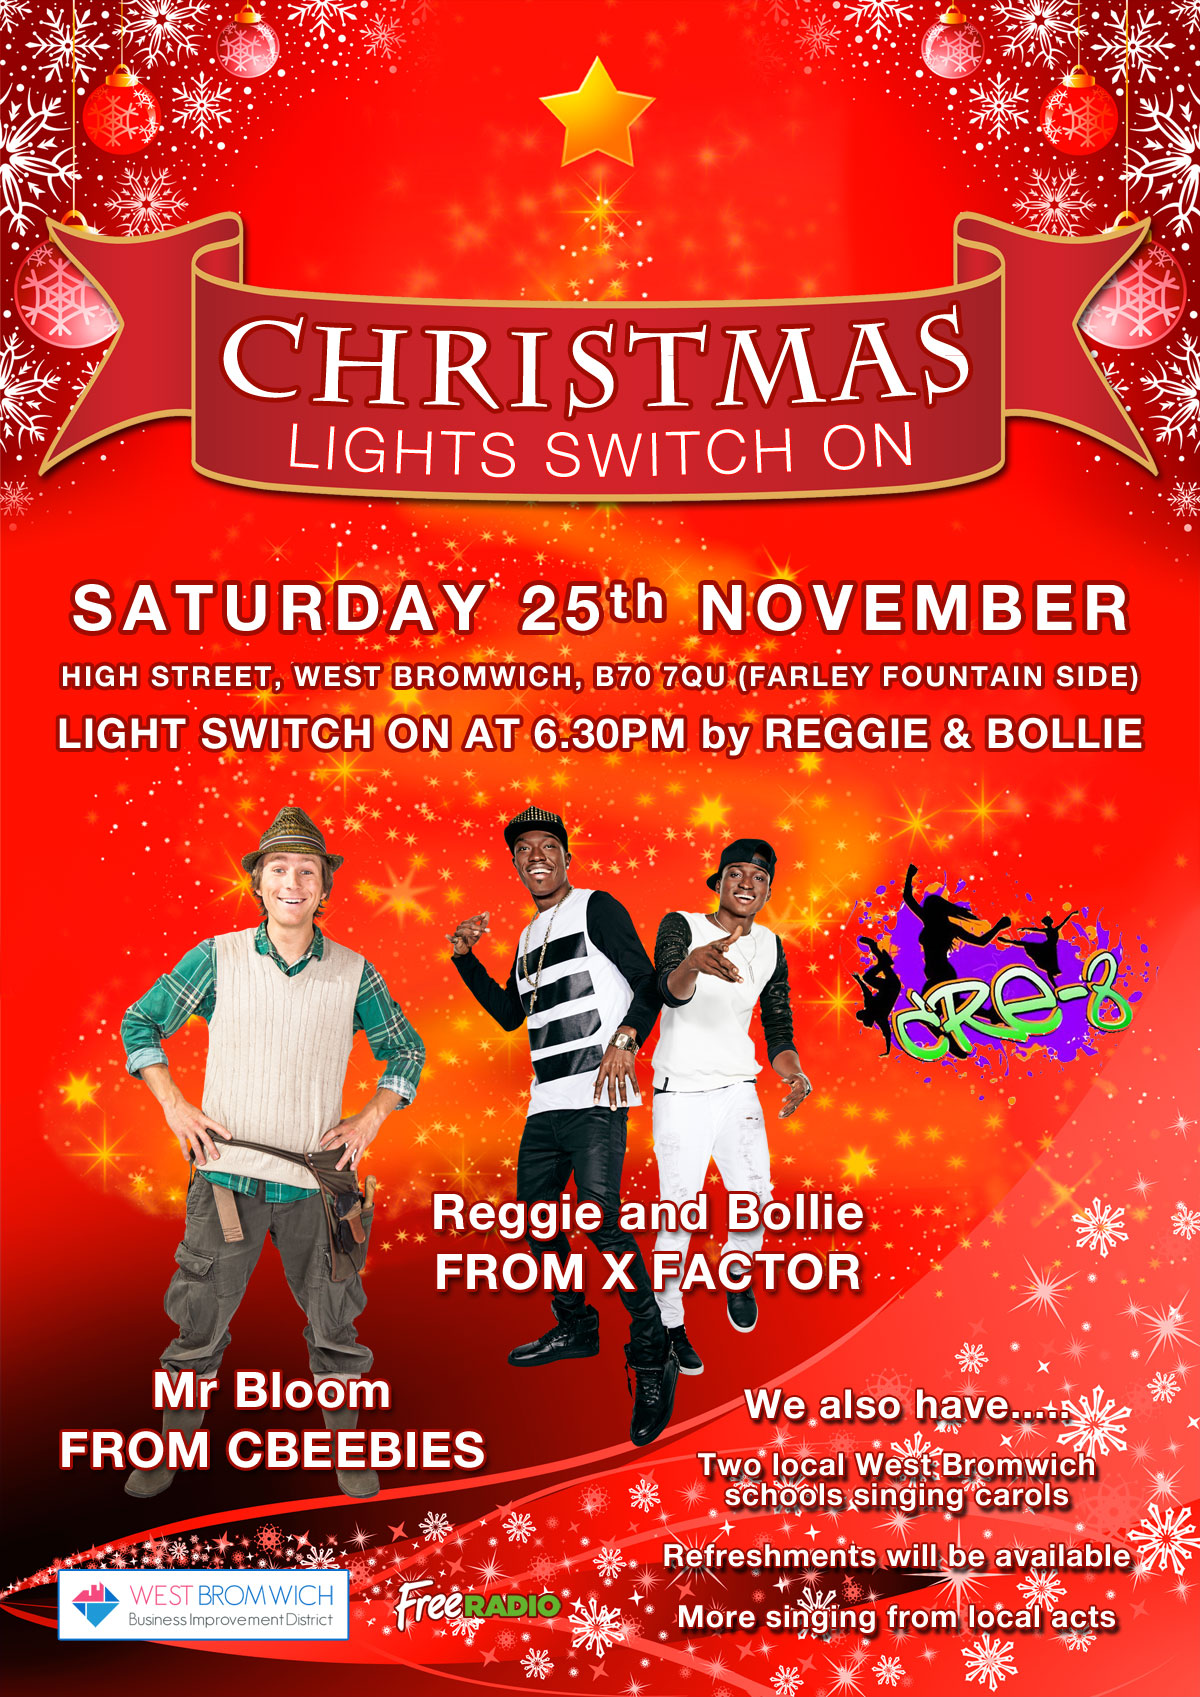 West Bromwich Town Christmas Lights 2017